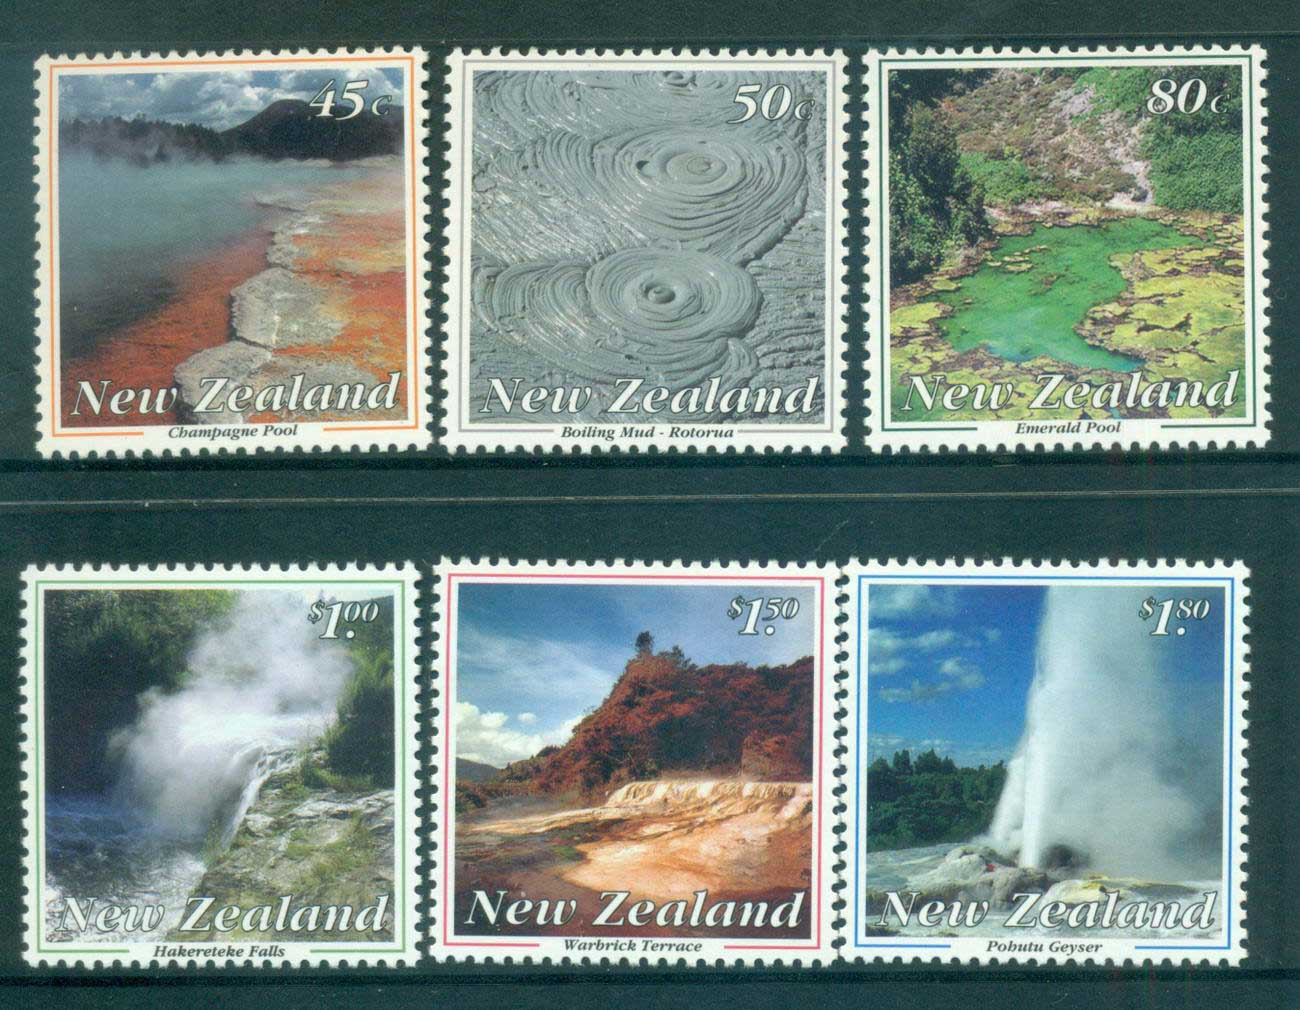 New Zealand 1993 Thermal Wonders MUH lot53174